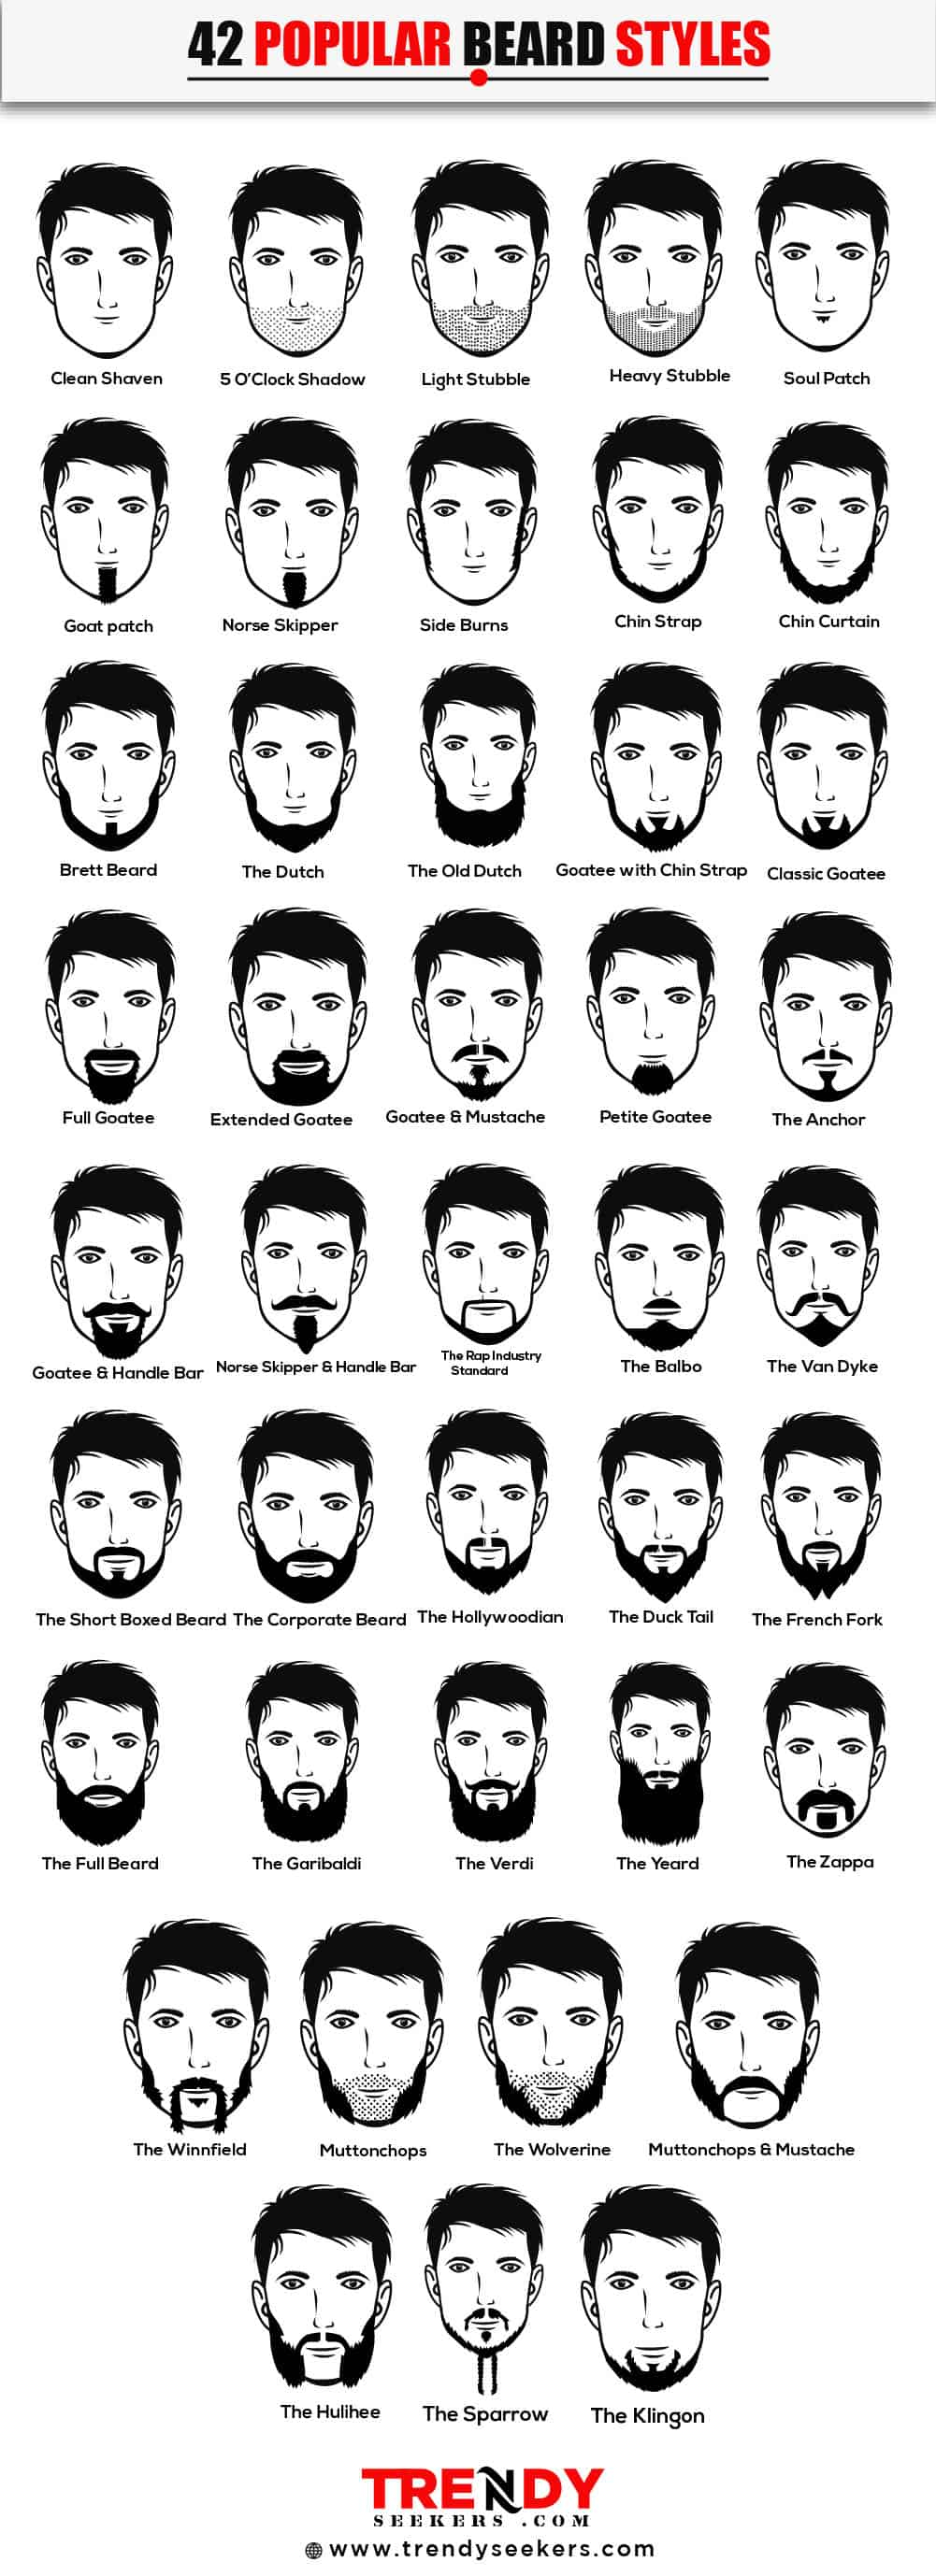 How To Grow A Beard The 42 Beard Styles 2019 Ultimate Guide